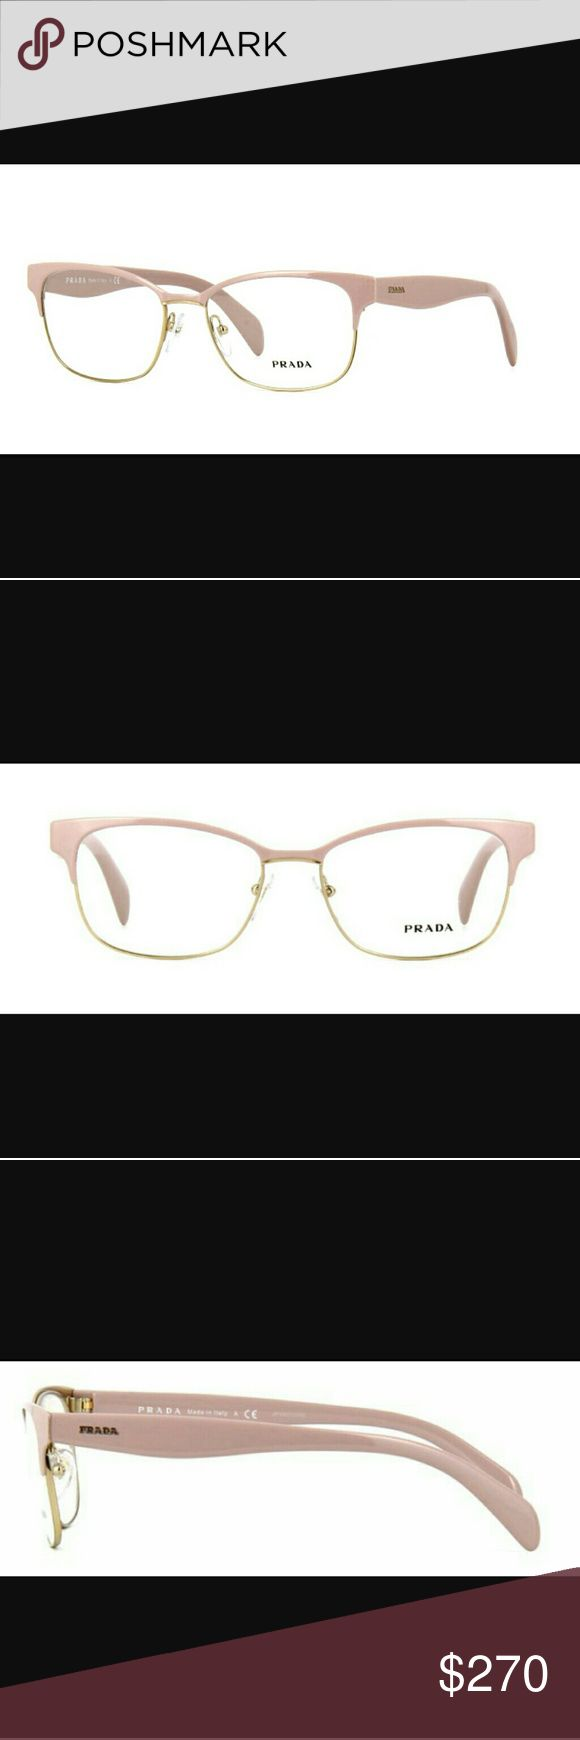 Prada frames Beautiful classy and delicious cotton candy pale pink top of frame and temples. And a gold bottom half. Which makes you able to wear with everything. They say Prada on each temple. And are more gorgeous on if you could even imagine that. Brand new never worn comes with authentic Case cleaning cloth and proof of authenticity. Prada Accessories Glasses